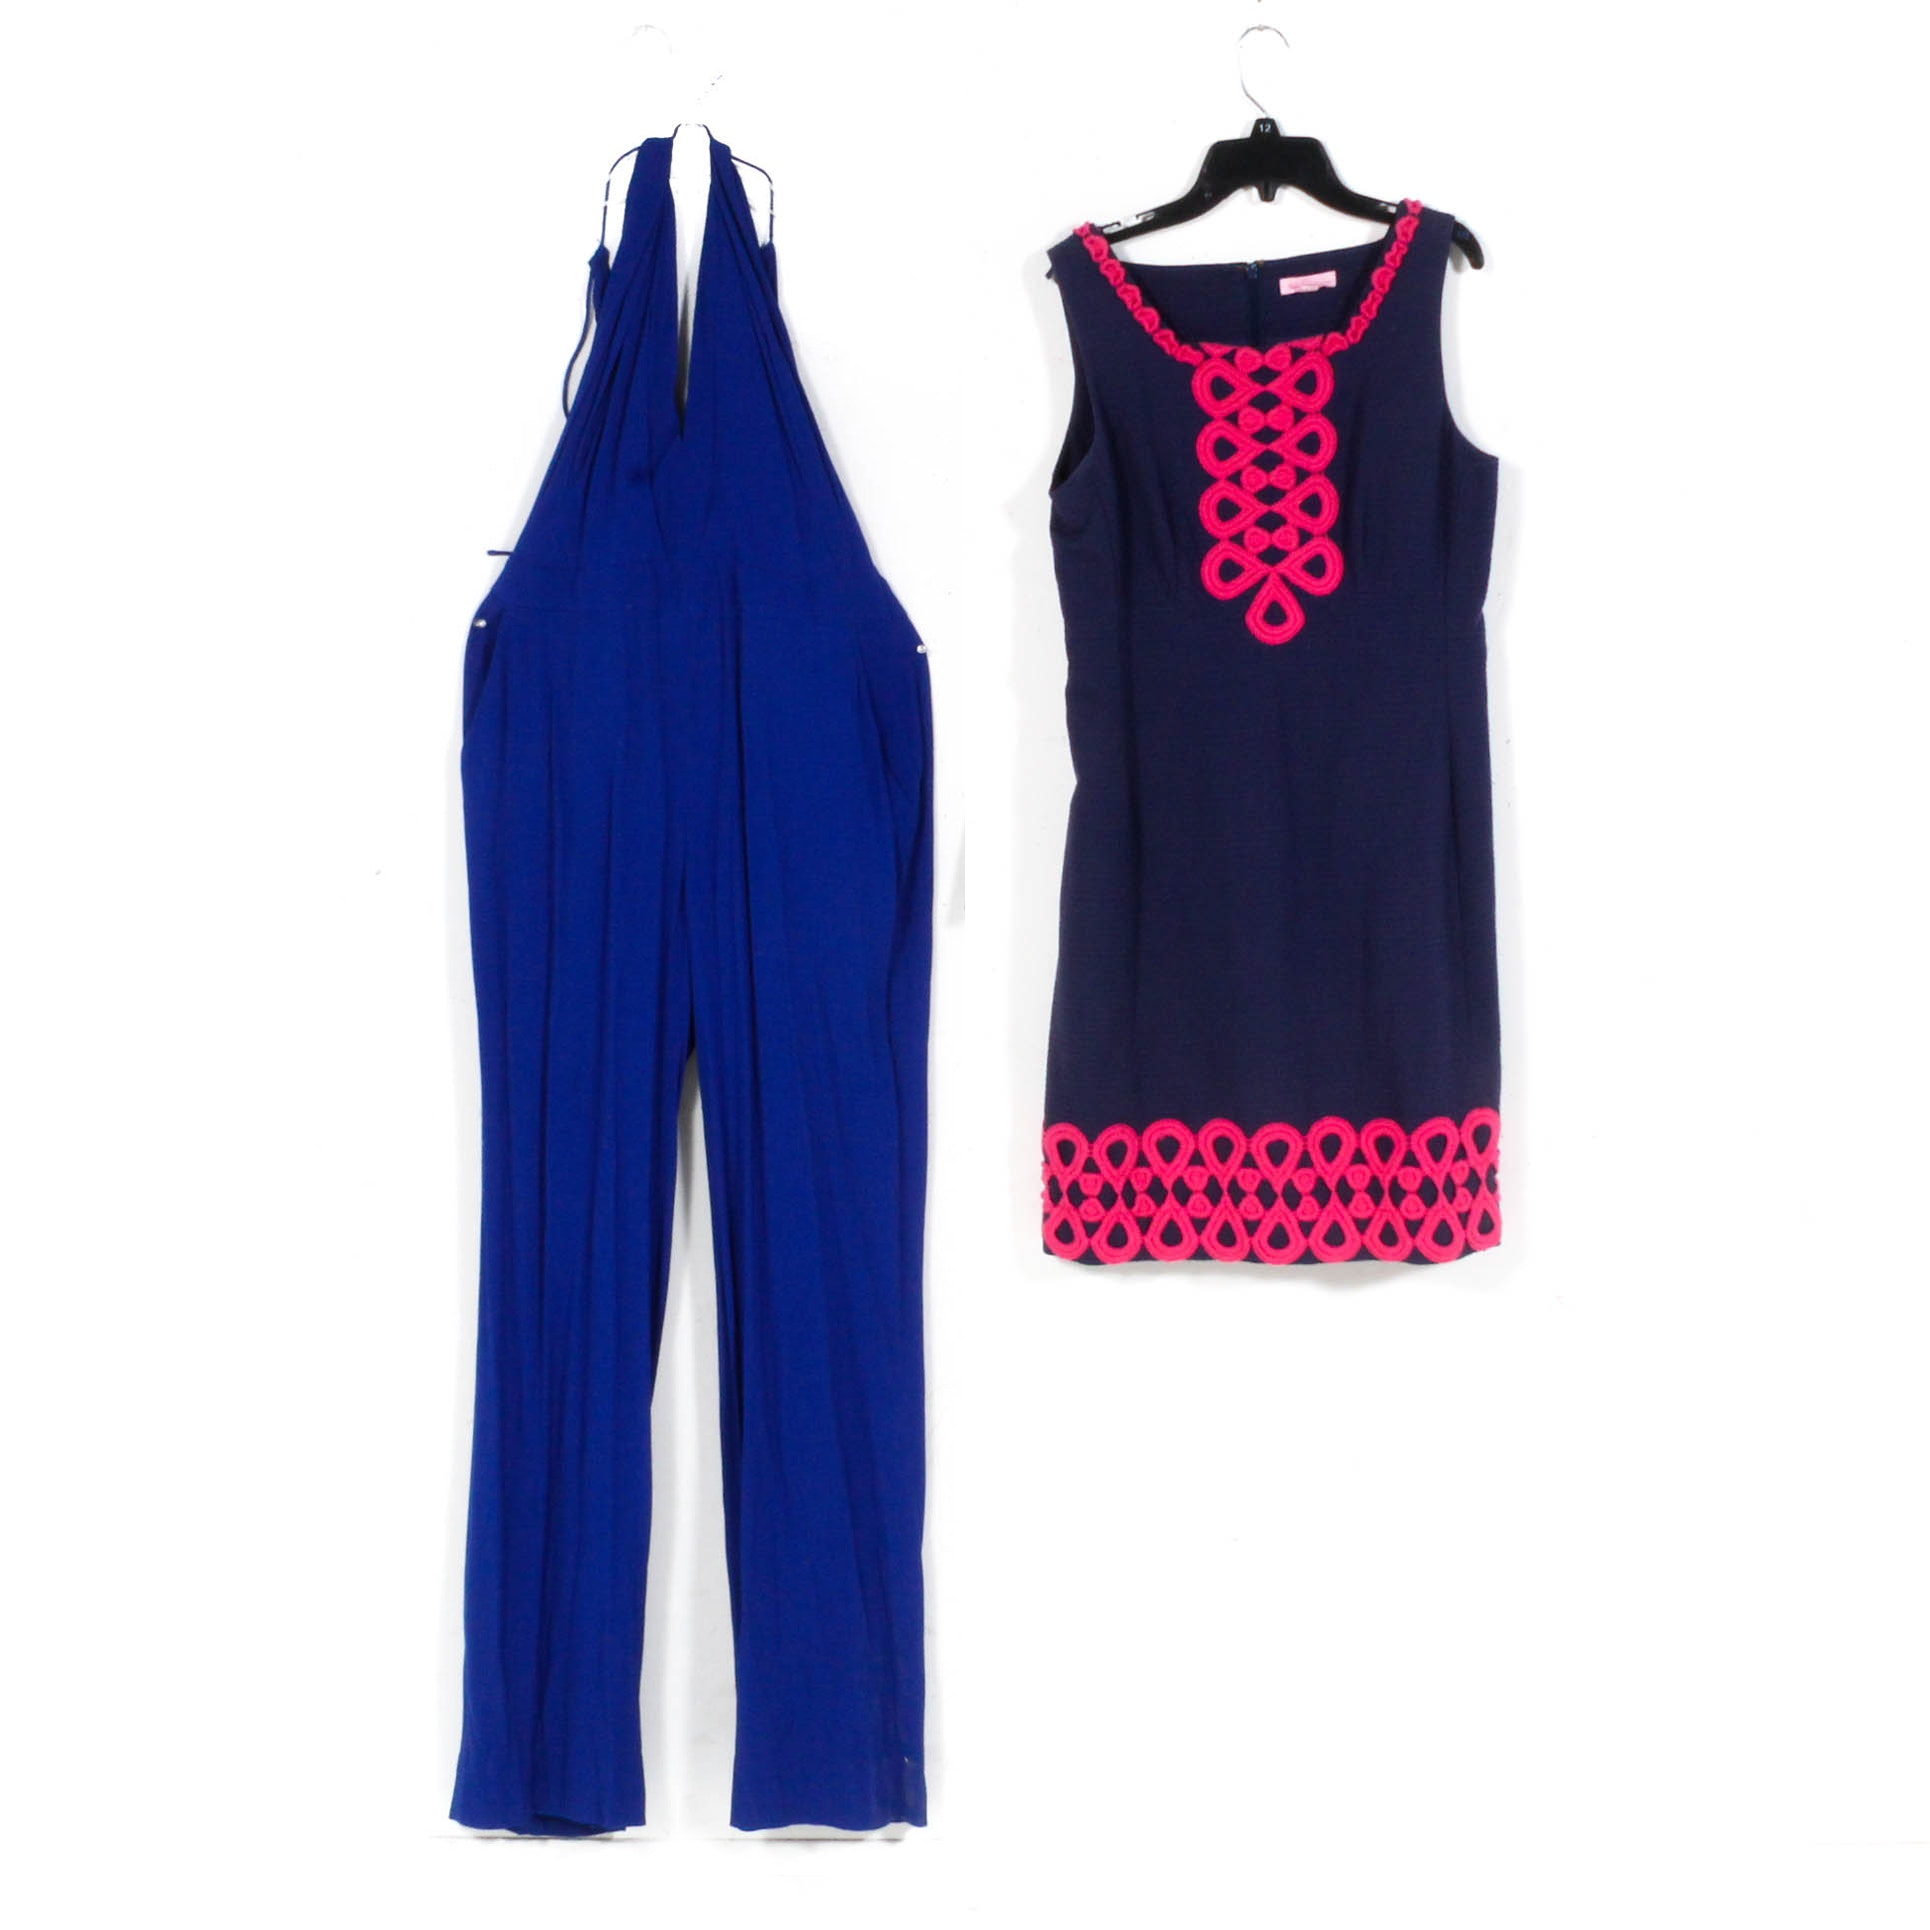 Diane von Fürstenberg Jumpsuit and Lily Pulitzer Dress